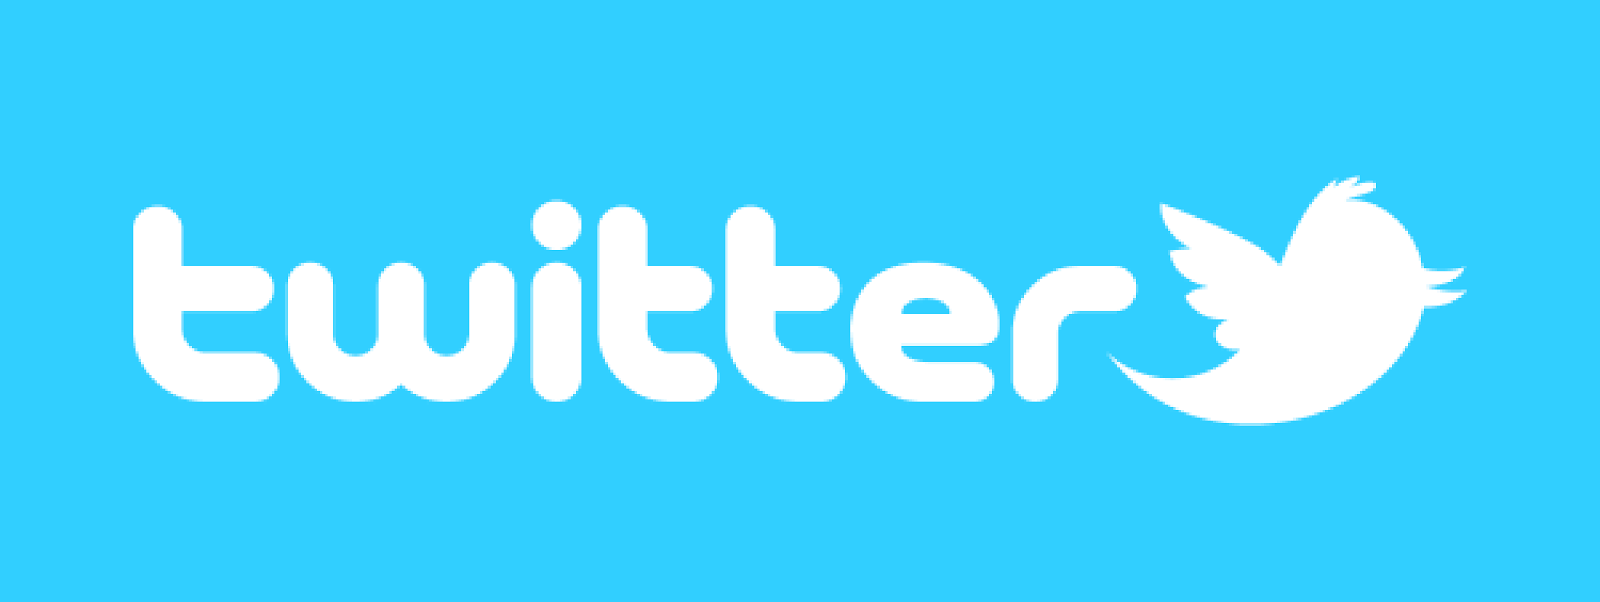 How To Make Money On Twitter Through Tweets, Ads, Affiliate Marketing